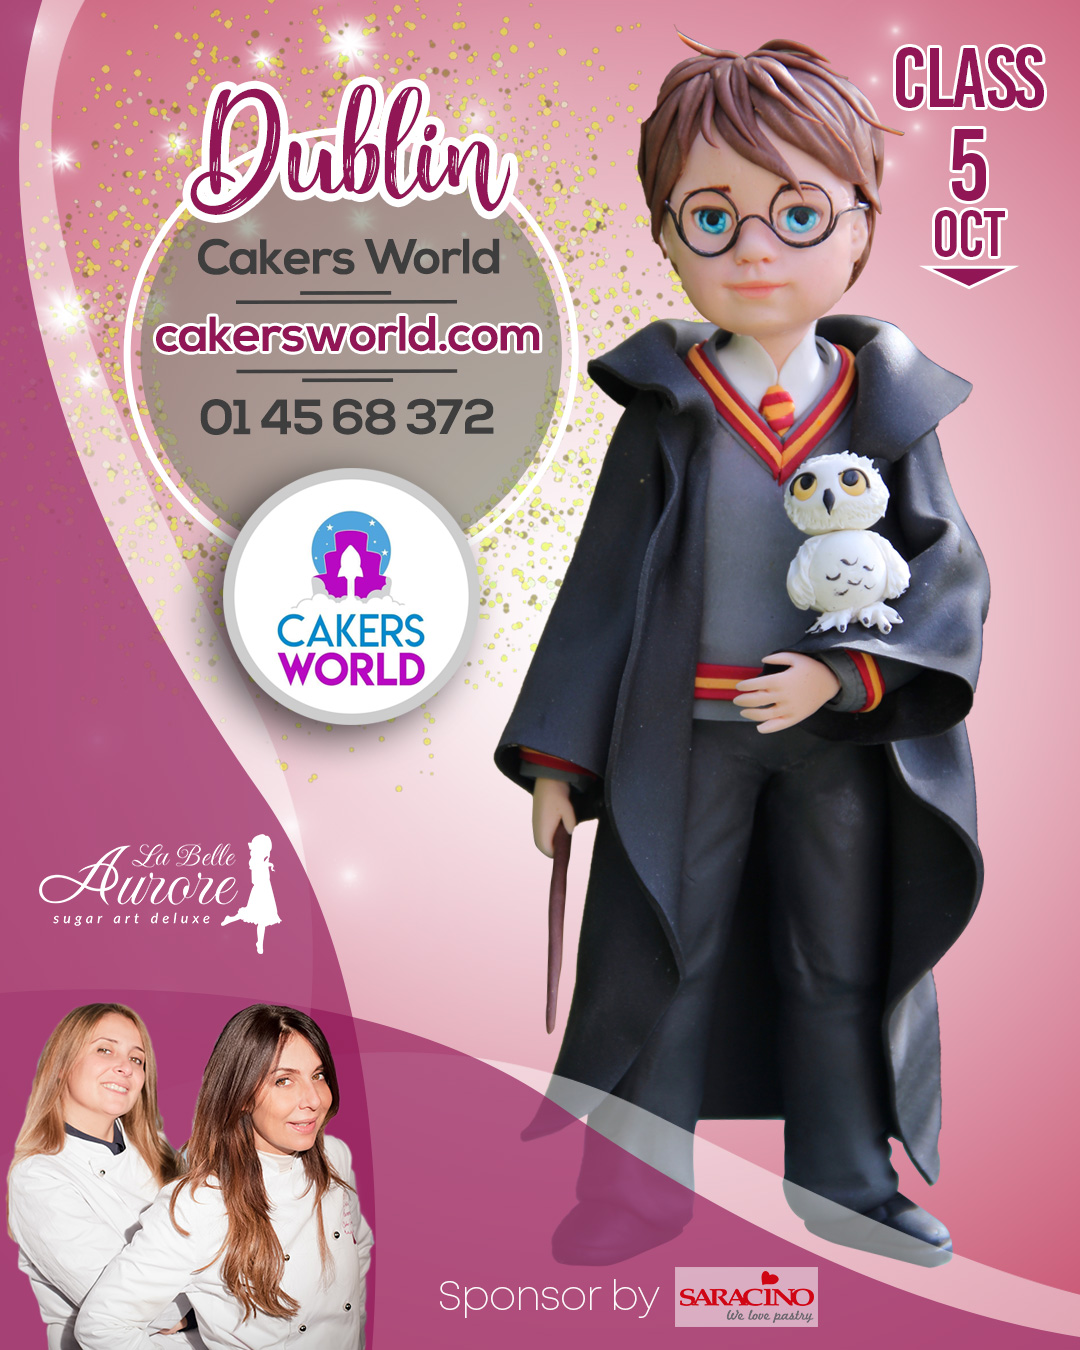 Harry Porter master class dublin- cakers world - cake designer roma Modeling sugar doll La Belle Aurore